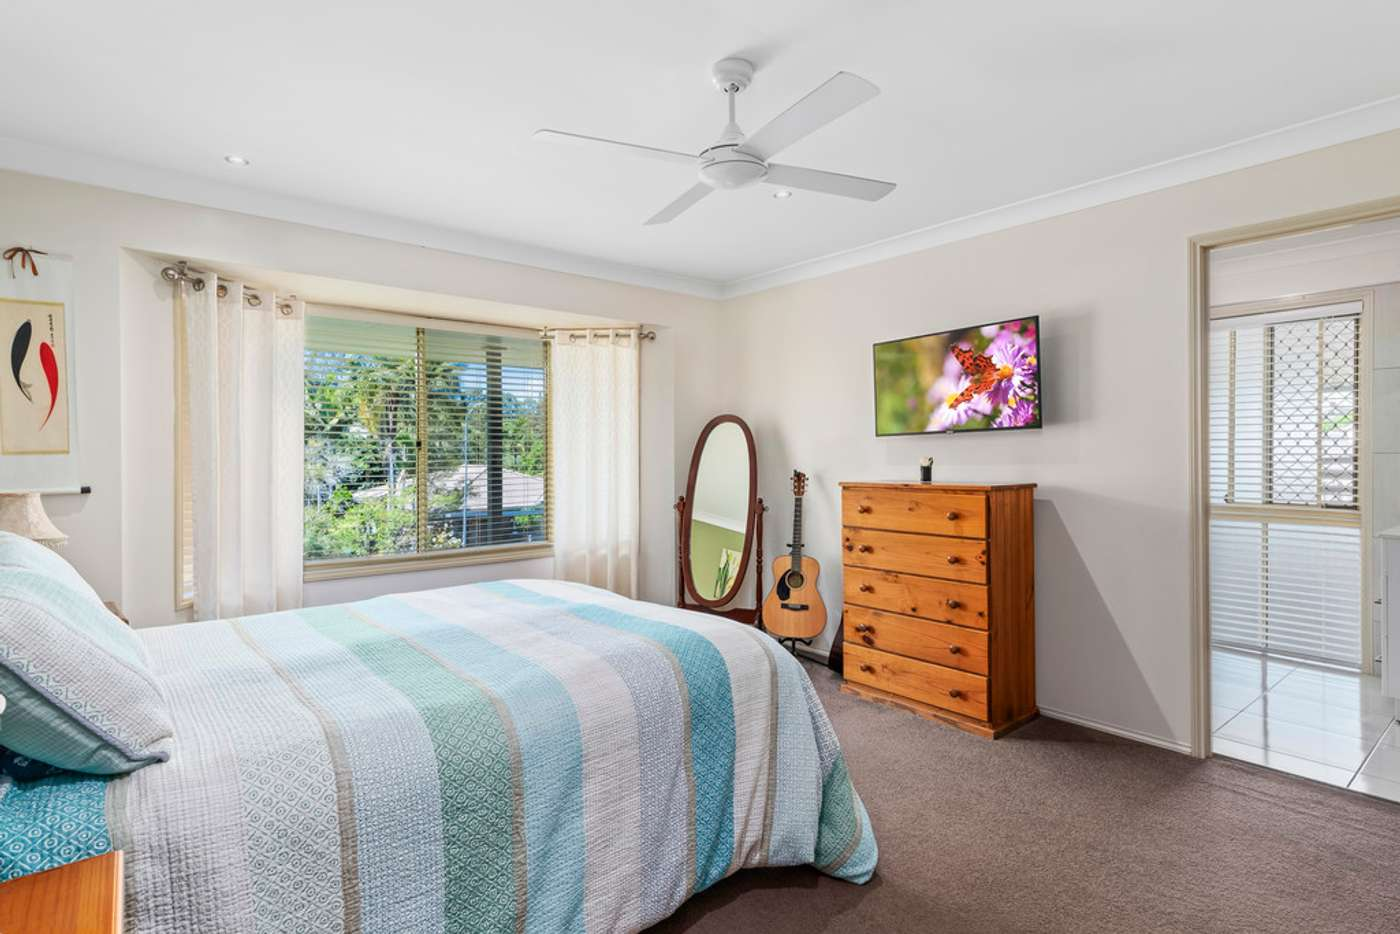 Seventh view of Homely house listing, 4 Carpenter Court, Worongary QLD 4213